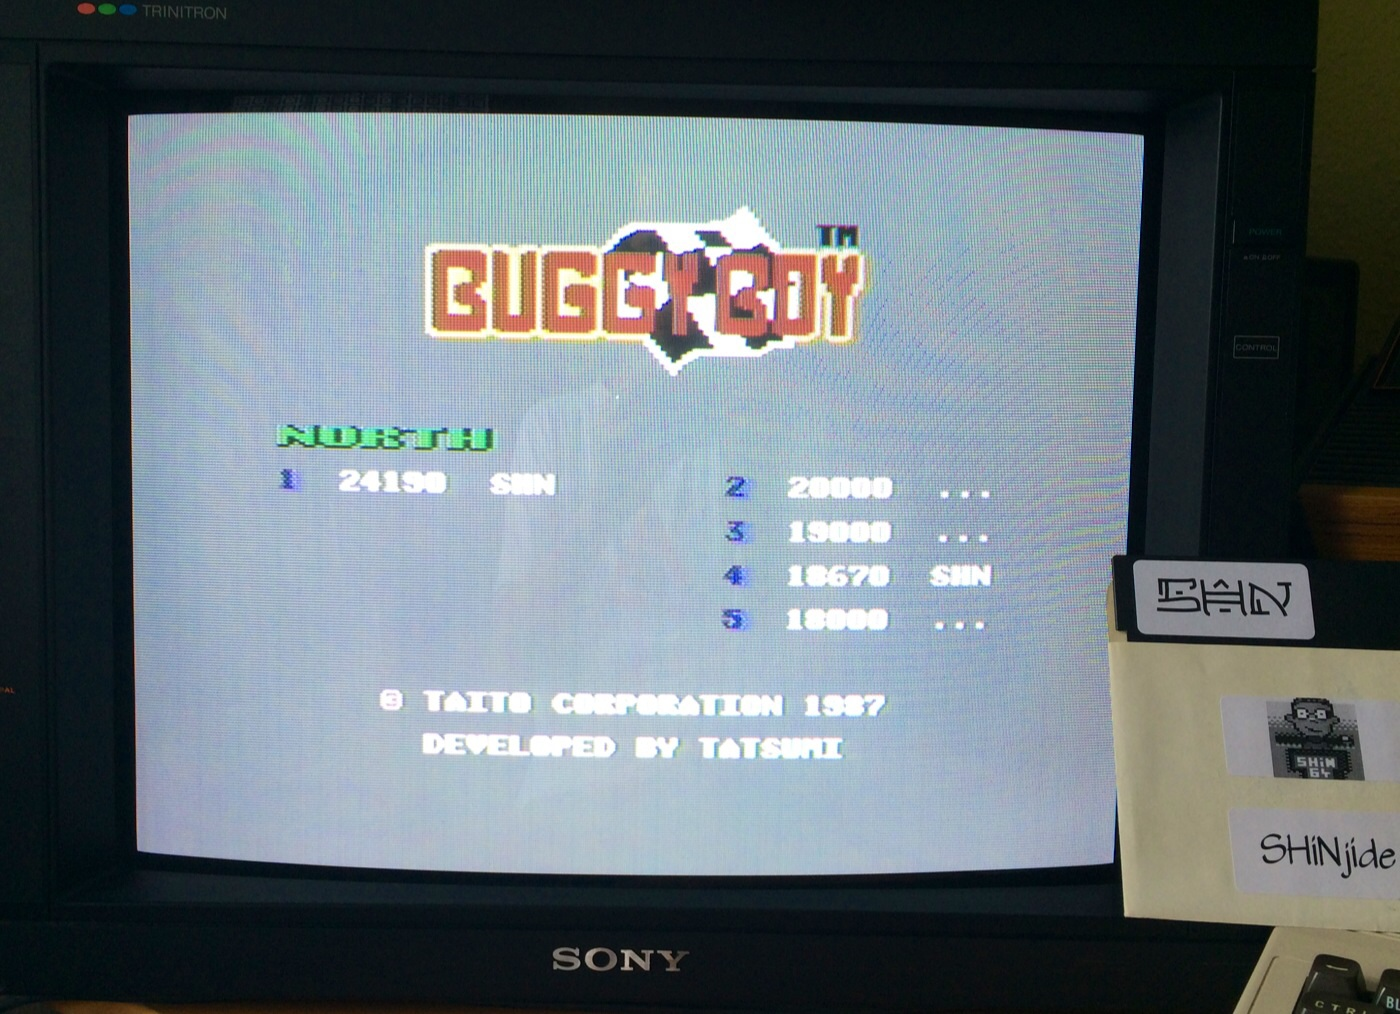 Buggy Boy: North 24,190 points